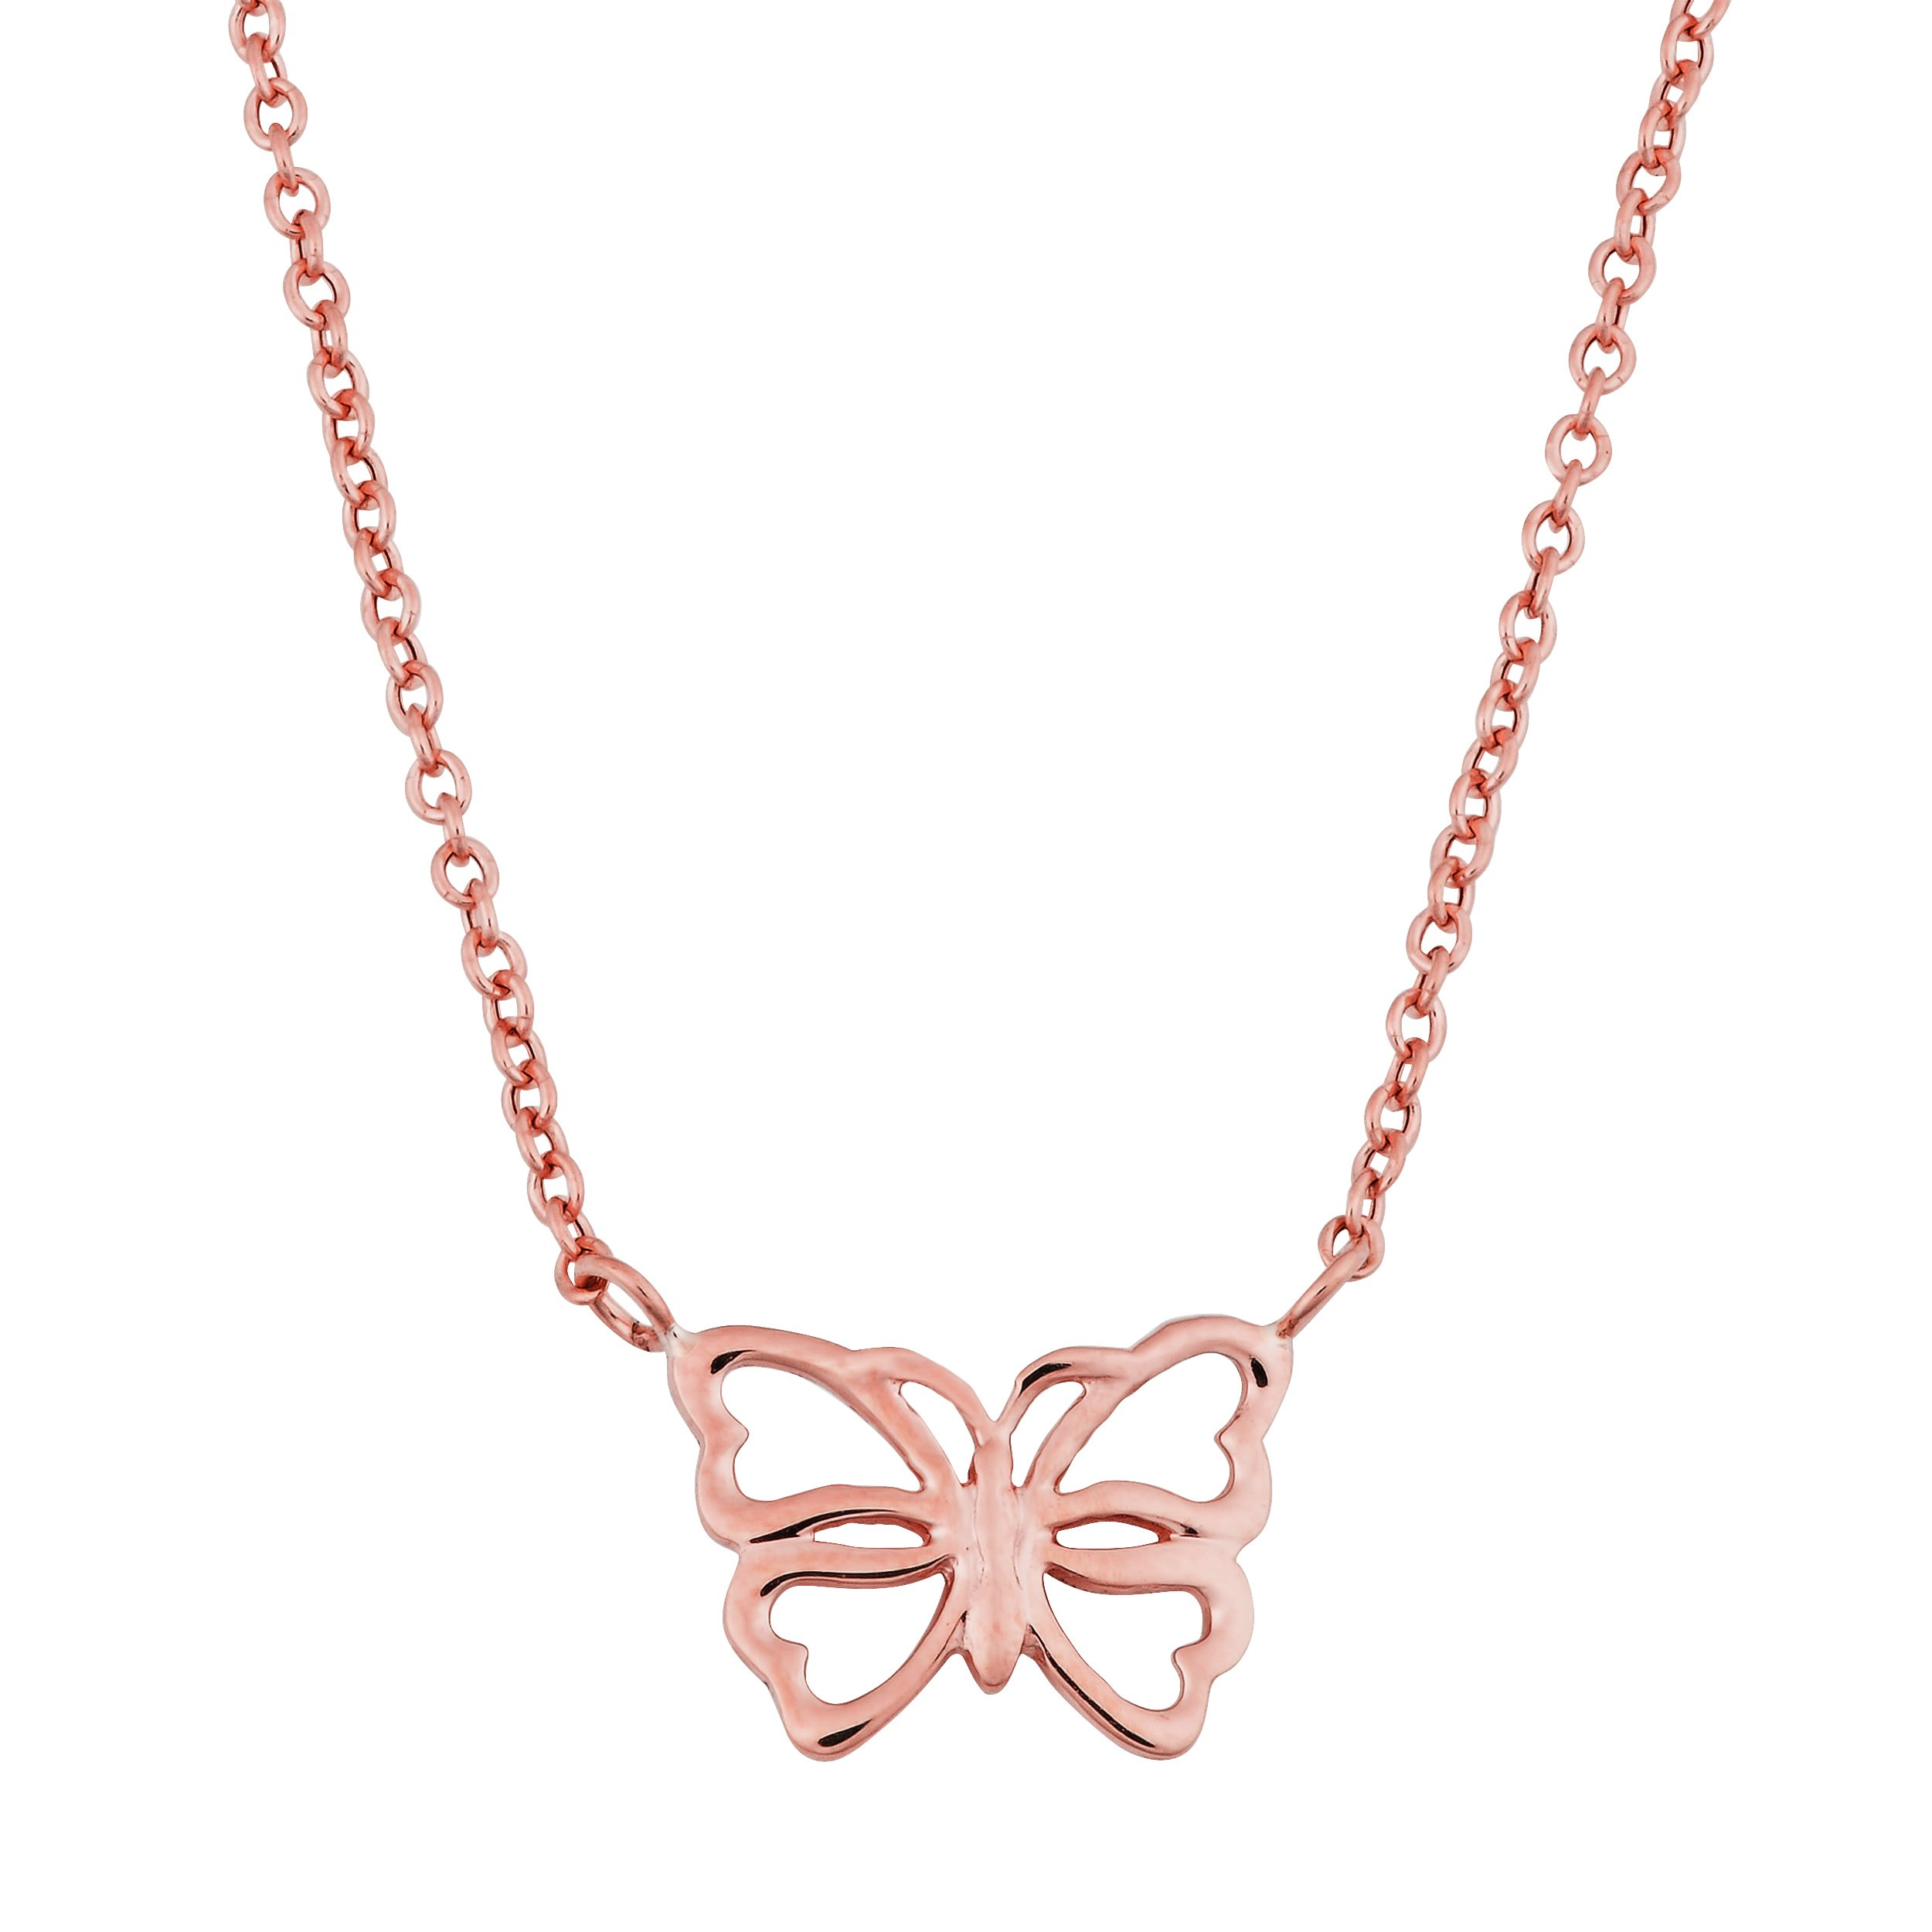 14k Rose Gold Butterfly Adjustable Length Necklace (fits 17'' or 18'')